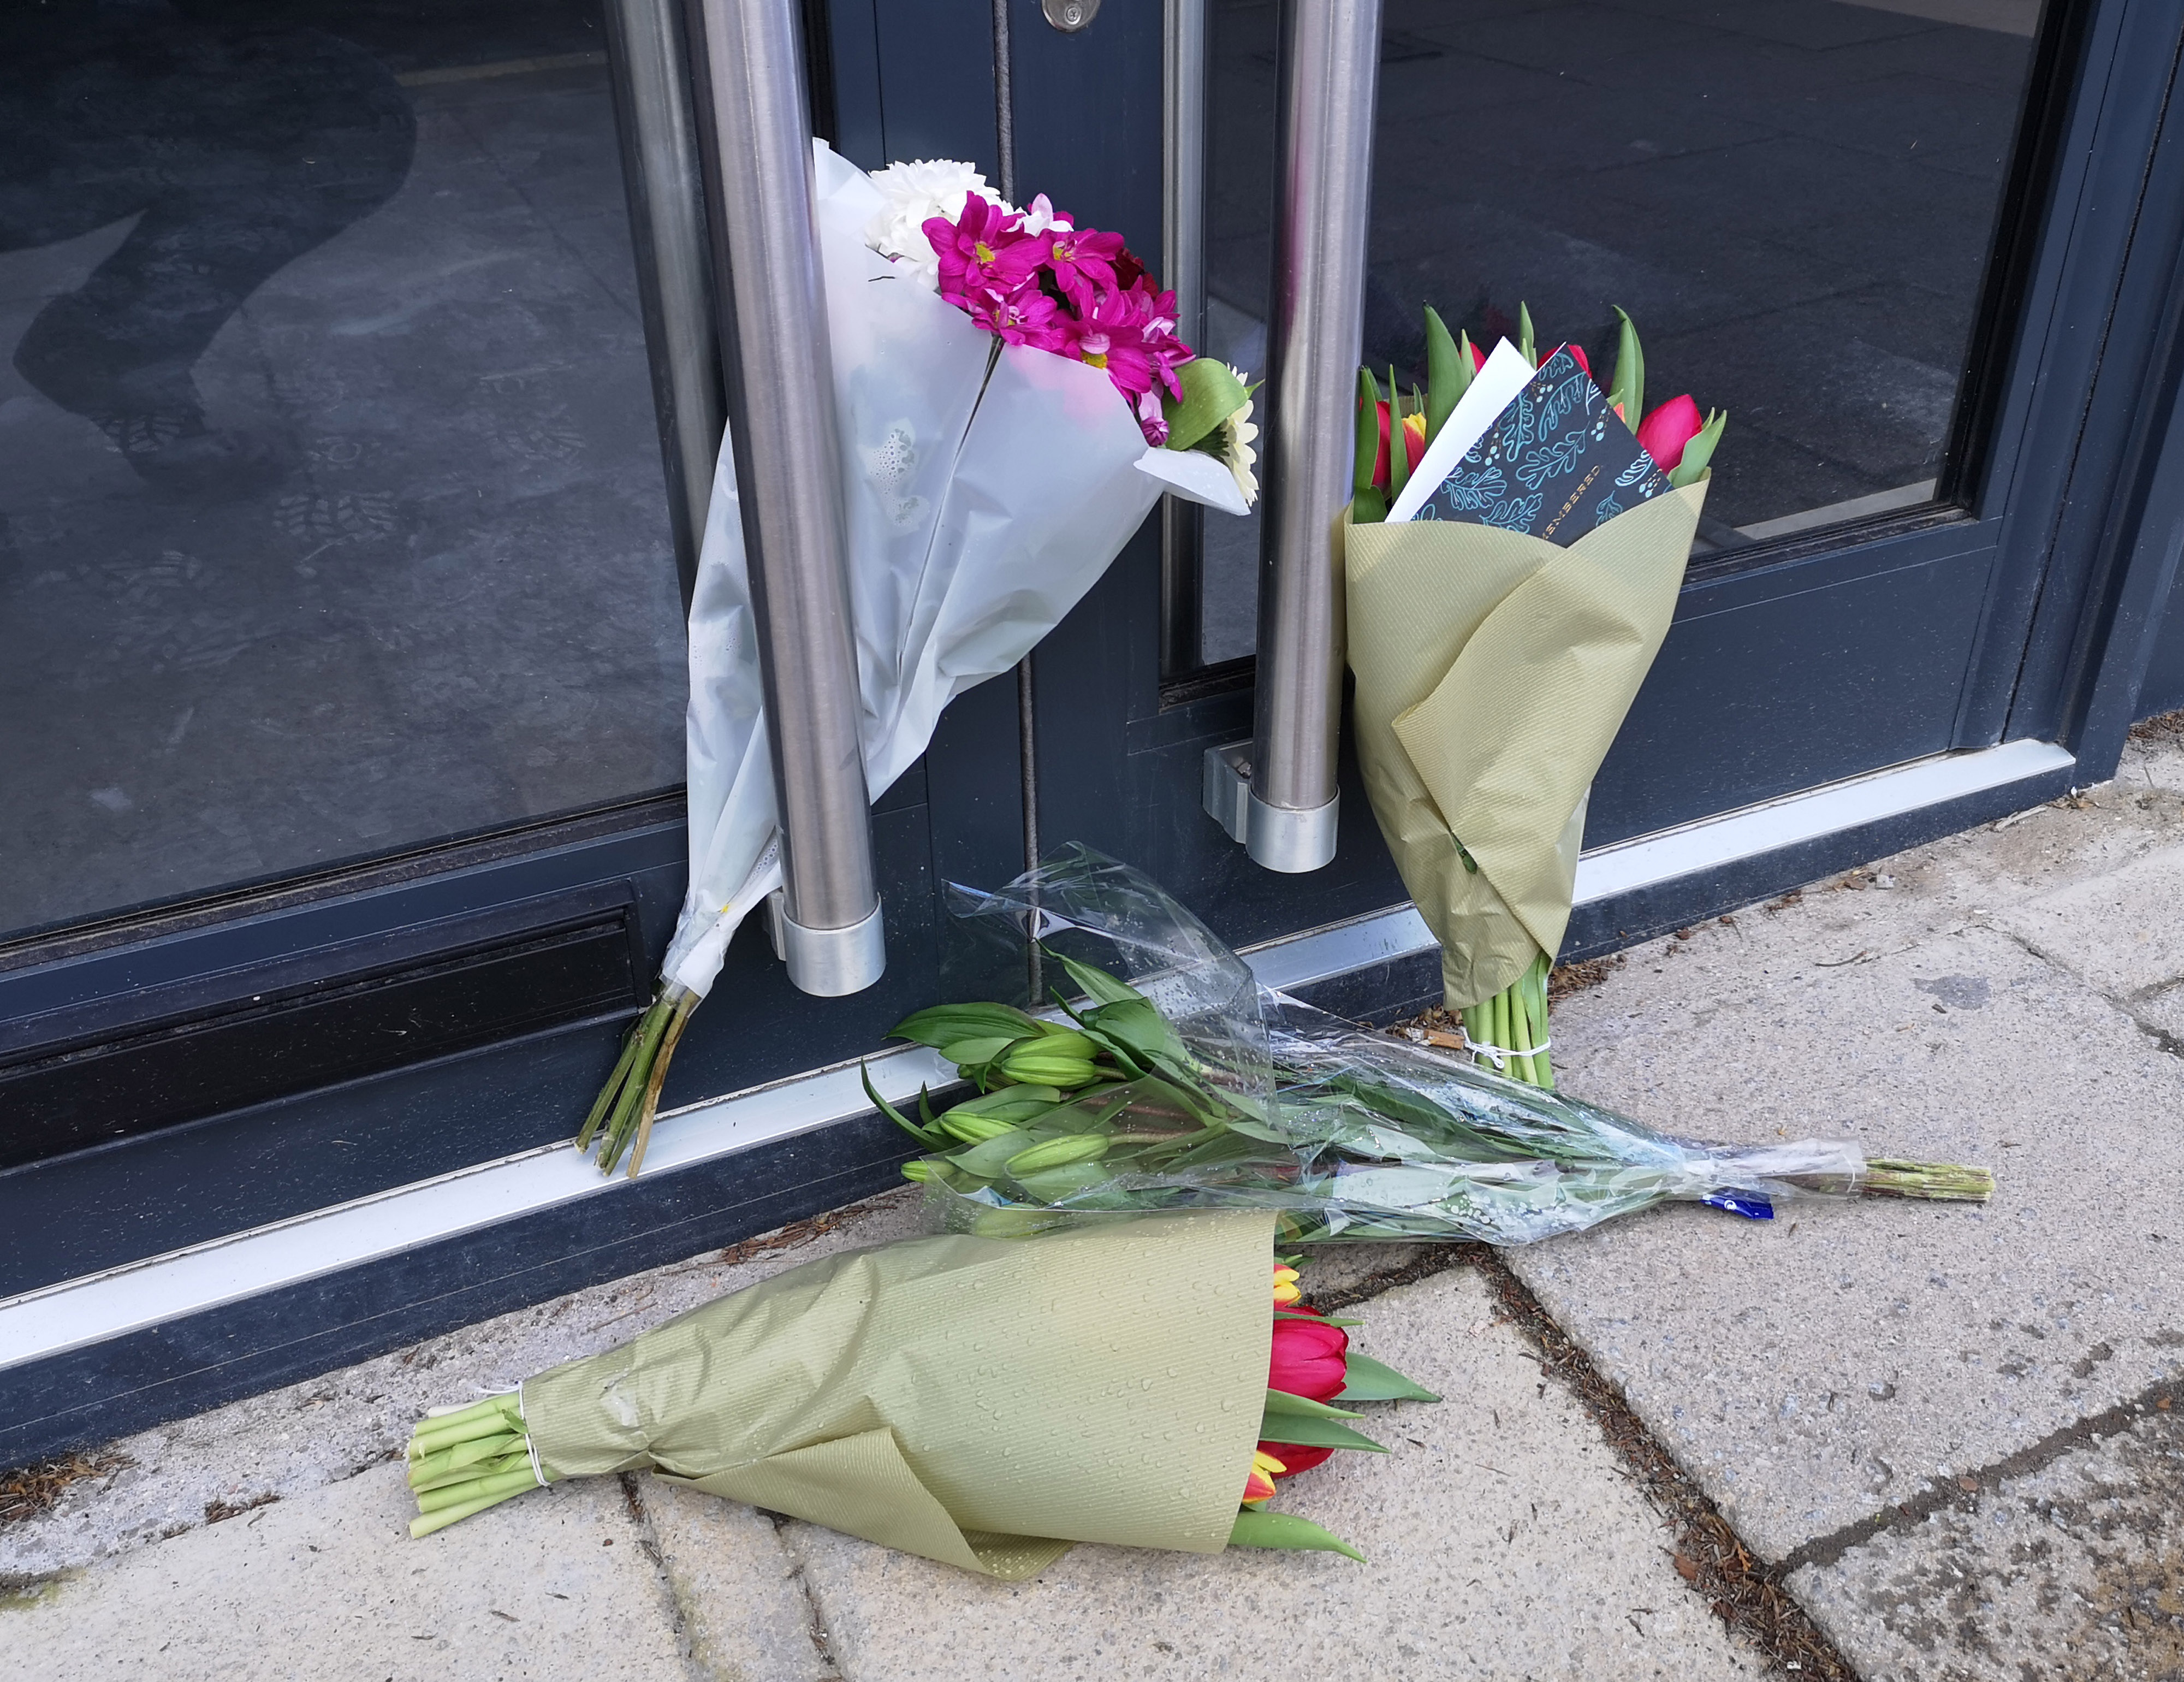 Tributes left outside the cafe that Mike Thalassitis planned to open. Credit: PA